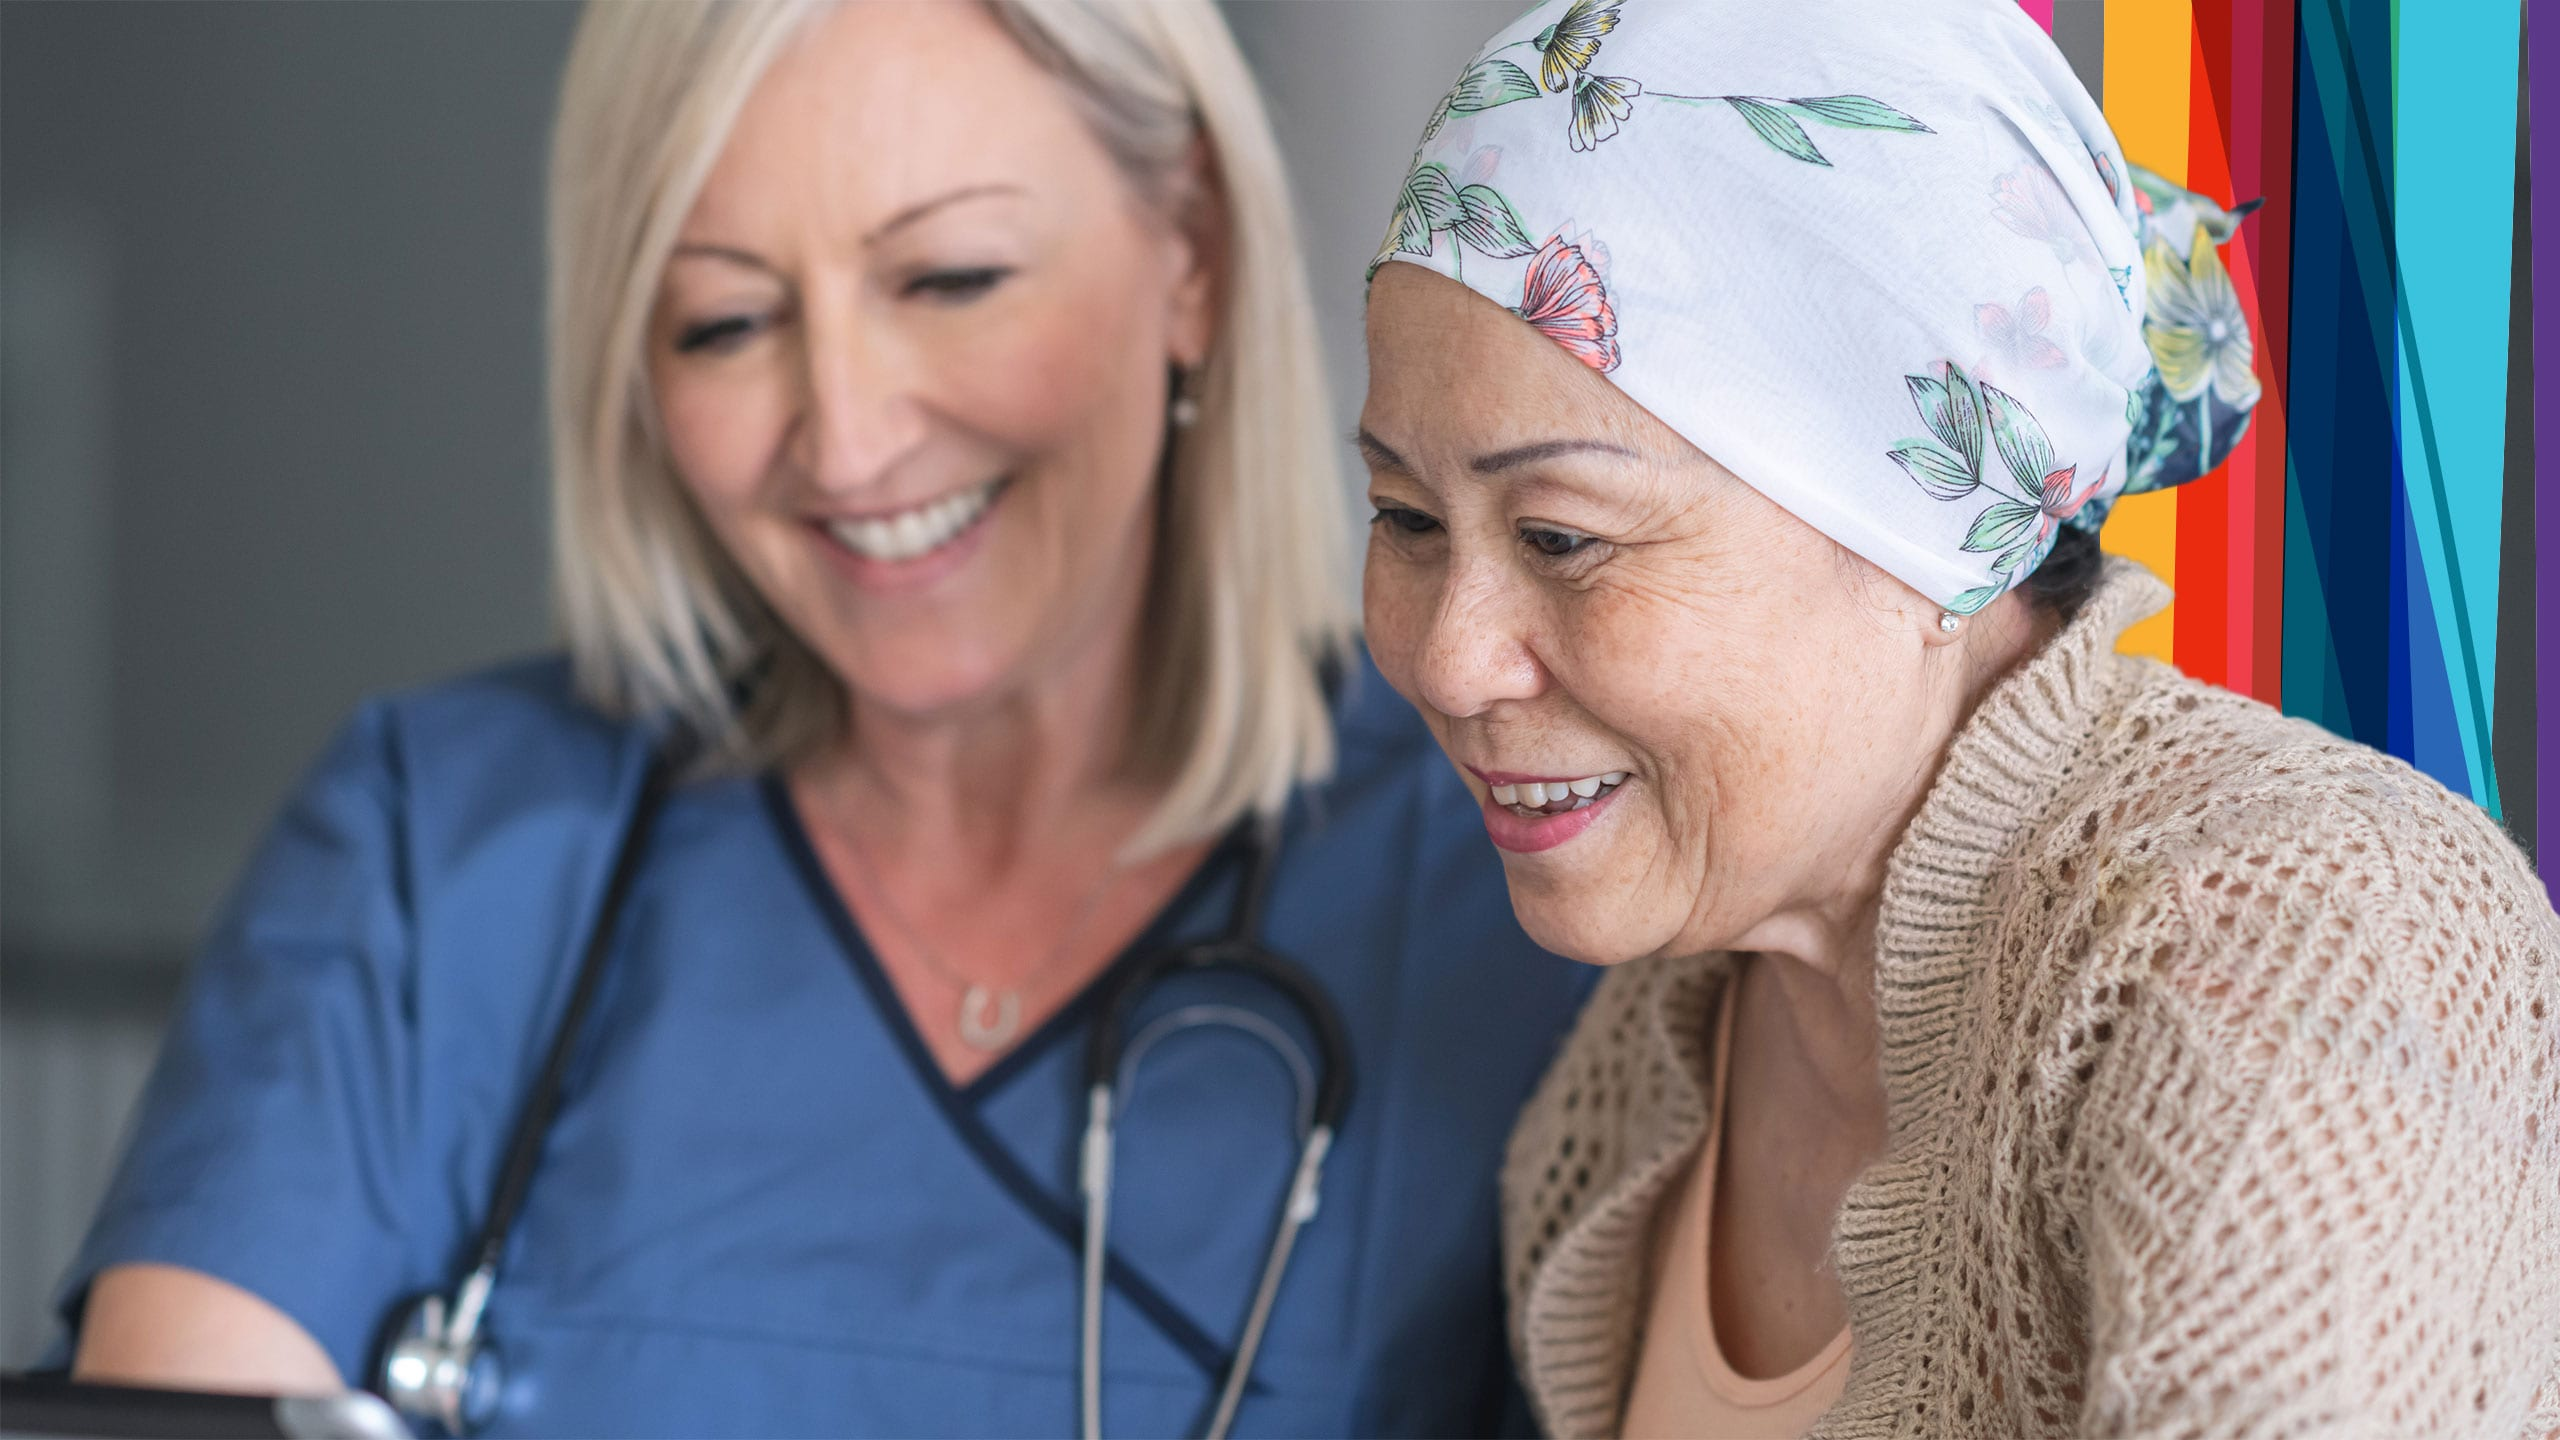 An oncology nurse interacting with a cancer patient